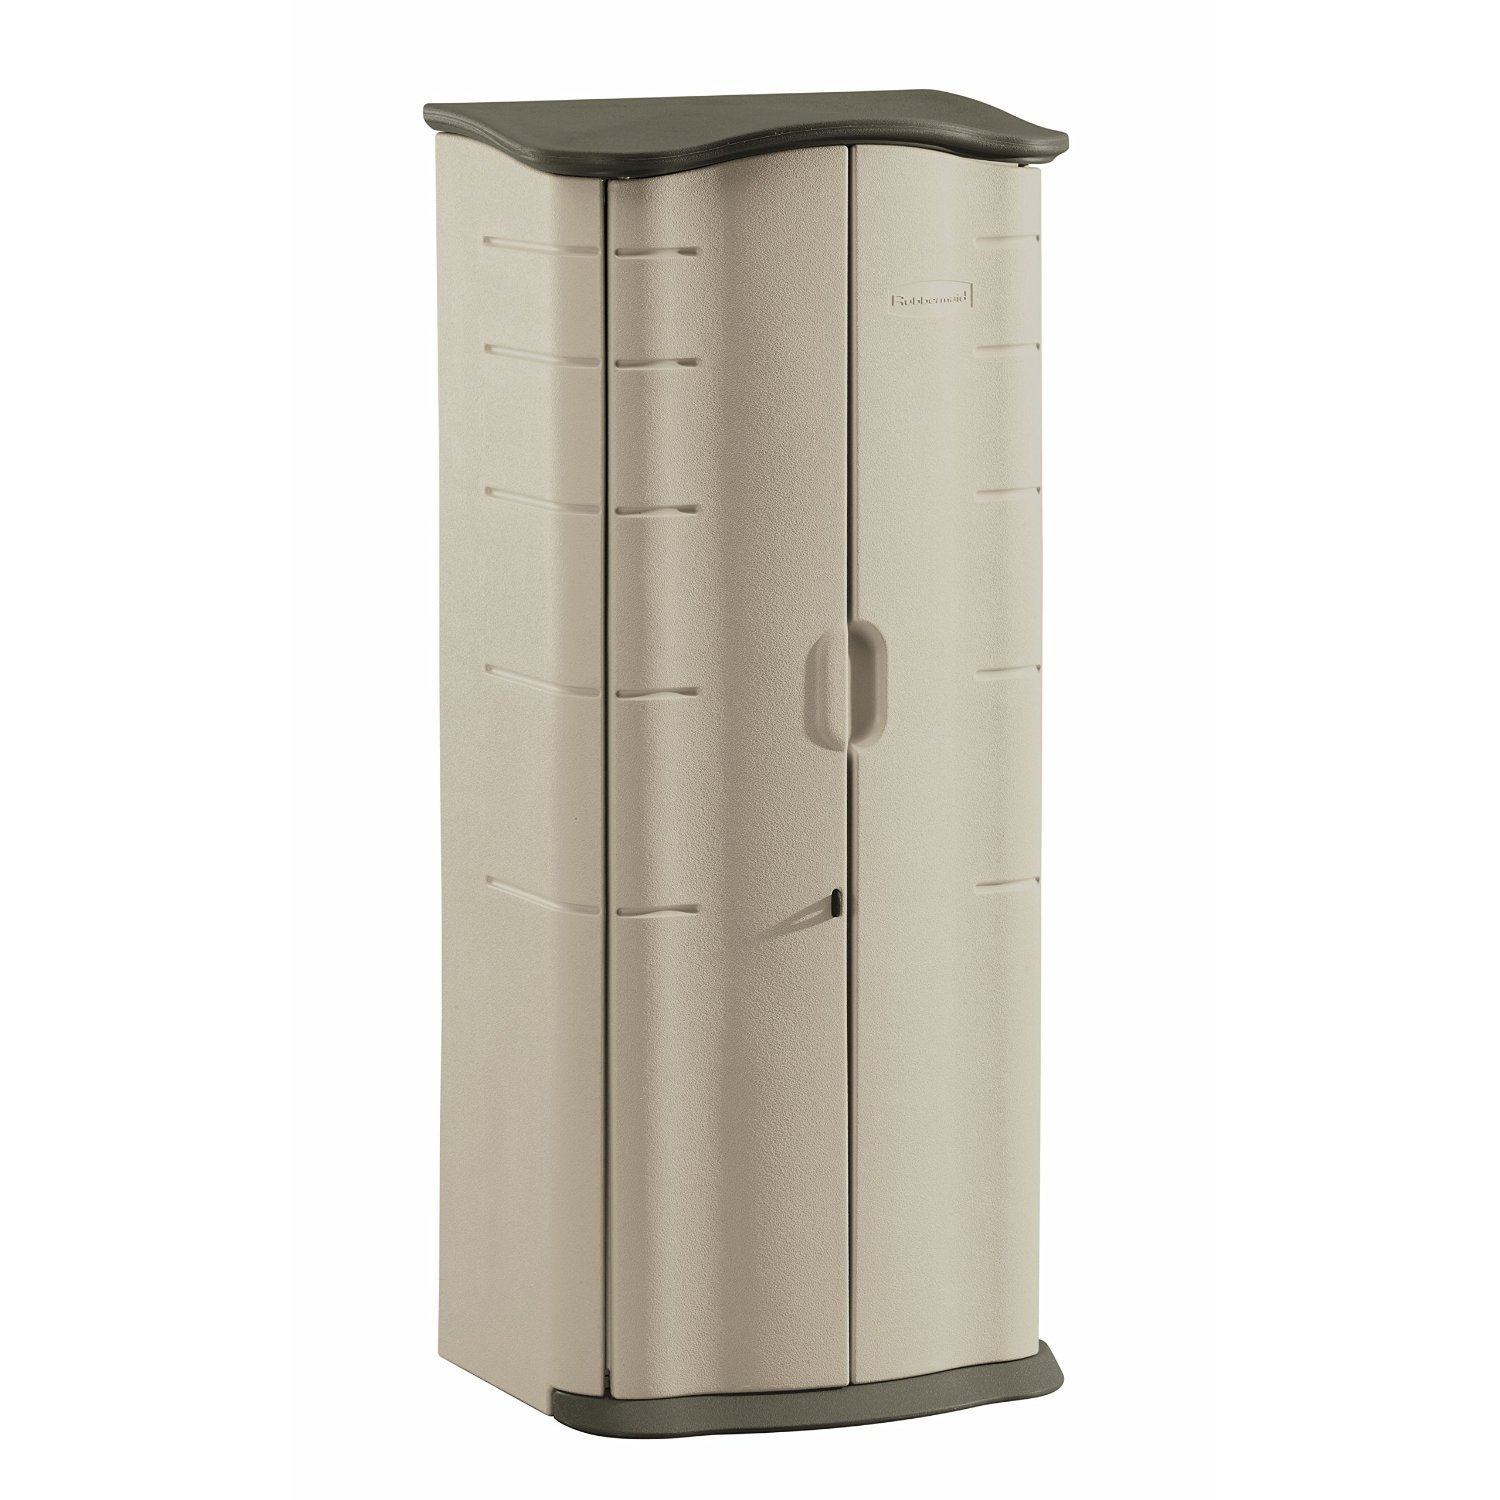 Rubbermaid FG374901OLVSS Vertical Storage Shed, Small, Beige by Rubbermaid